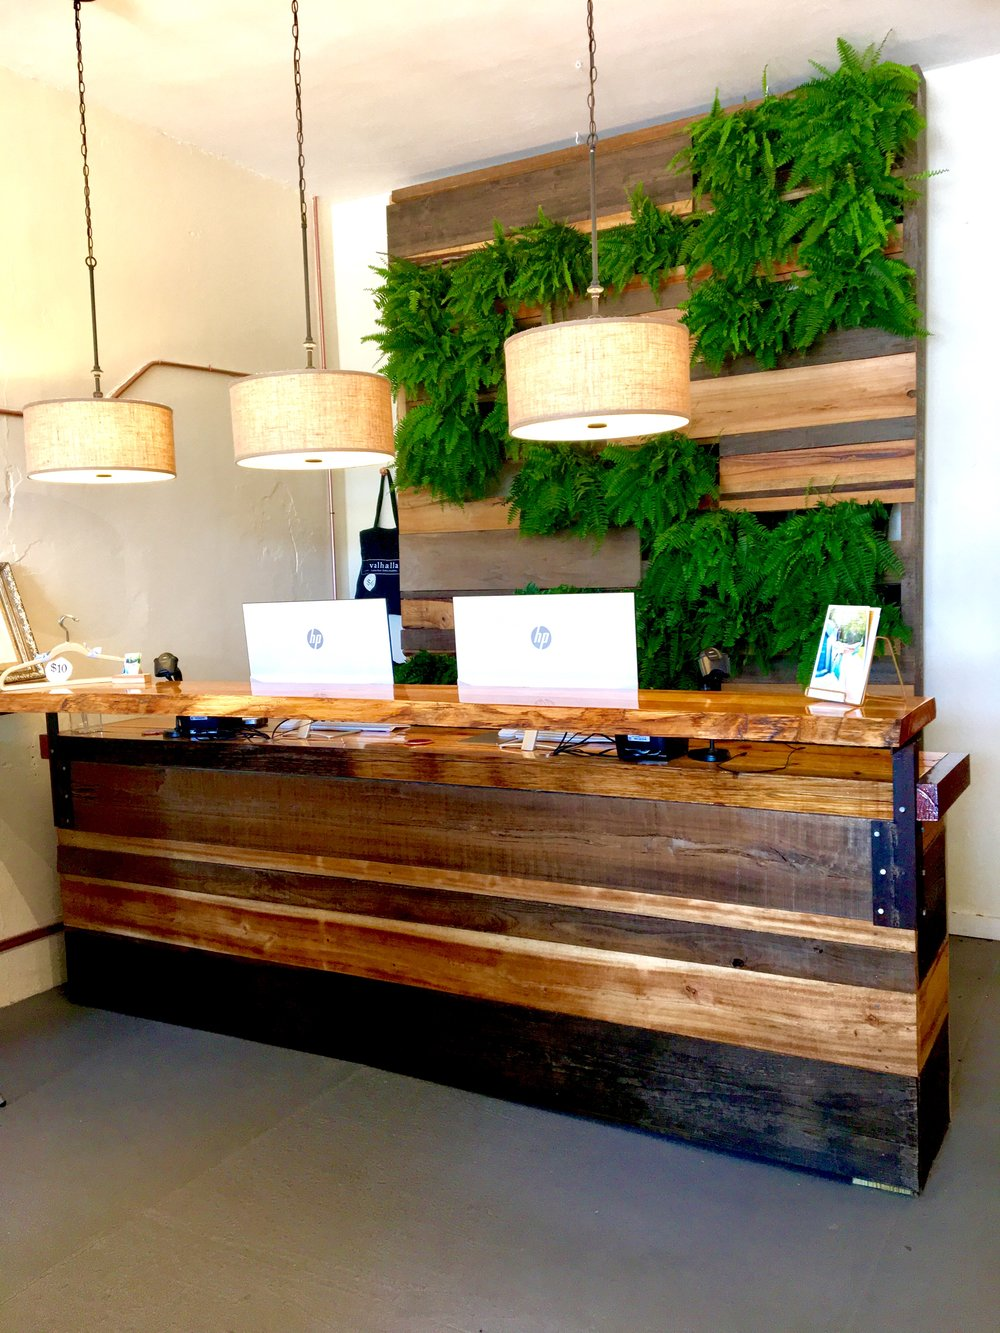 Hard Tack's Counter & Plant Wall